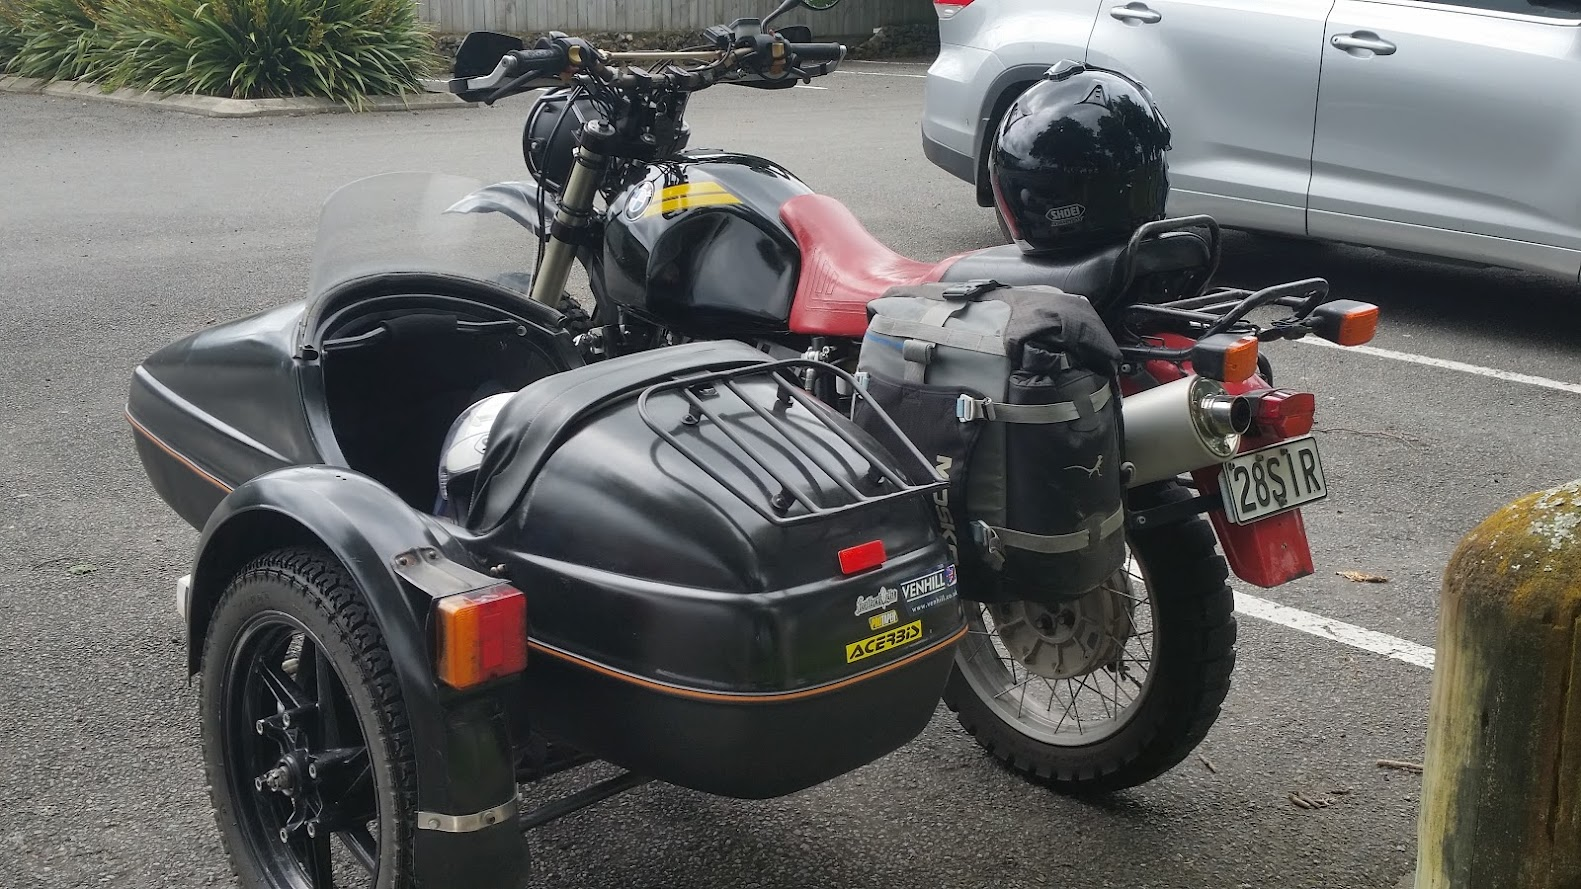 Back view R100GS with Velorex 562 sidecar